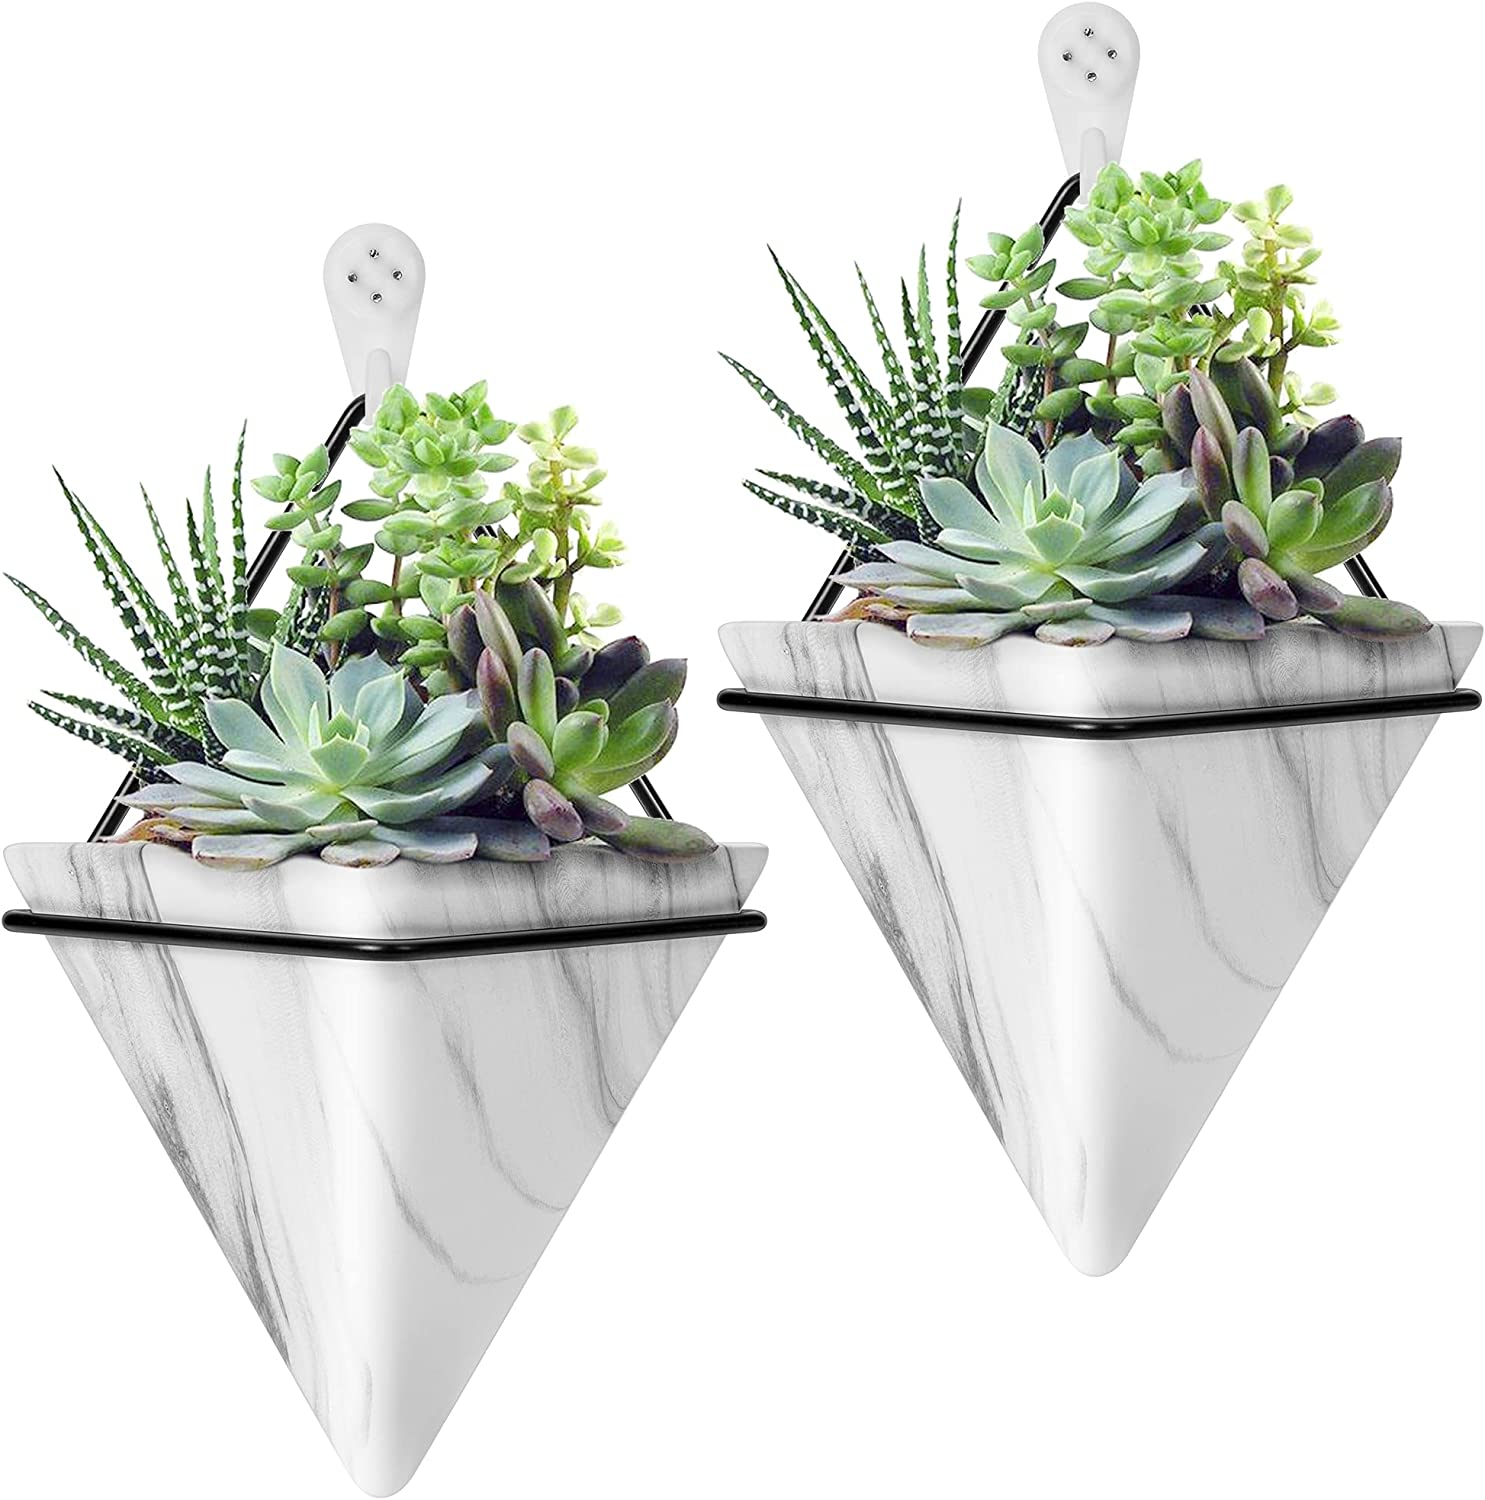 VIVOSUN 2-Pack Hanging Wall Planter Geometric Décor Vase for Succulent, Cactus and Faux Plants Wedding Birthday Gift 5.9 Inch